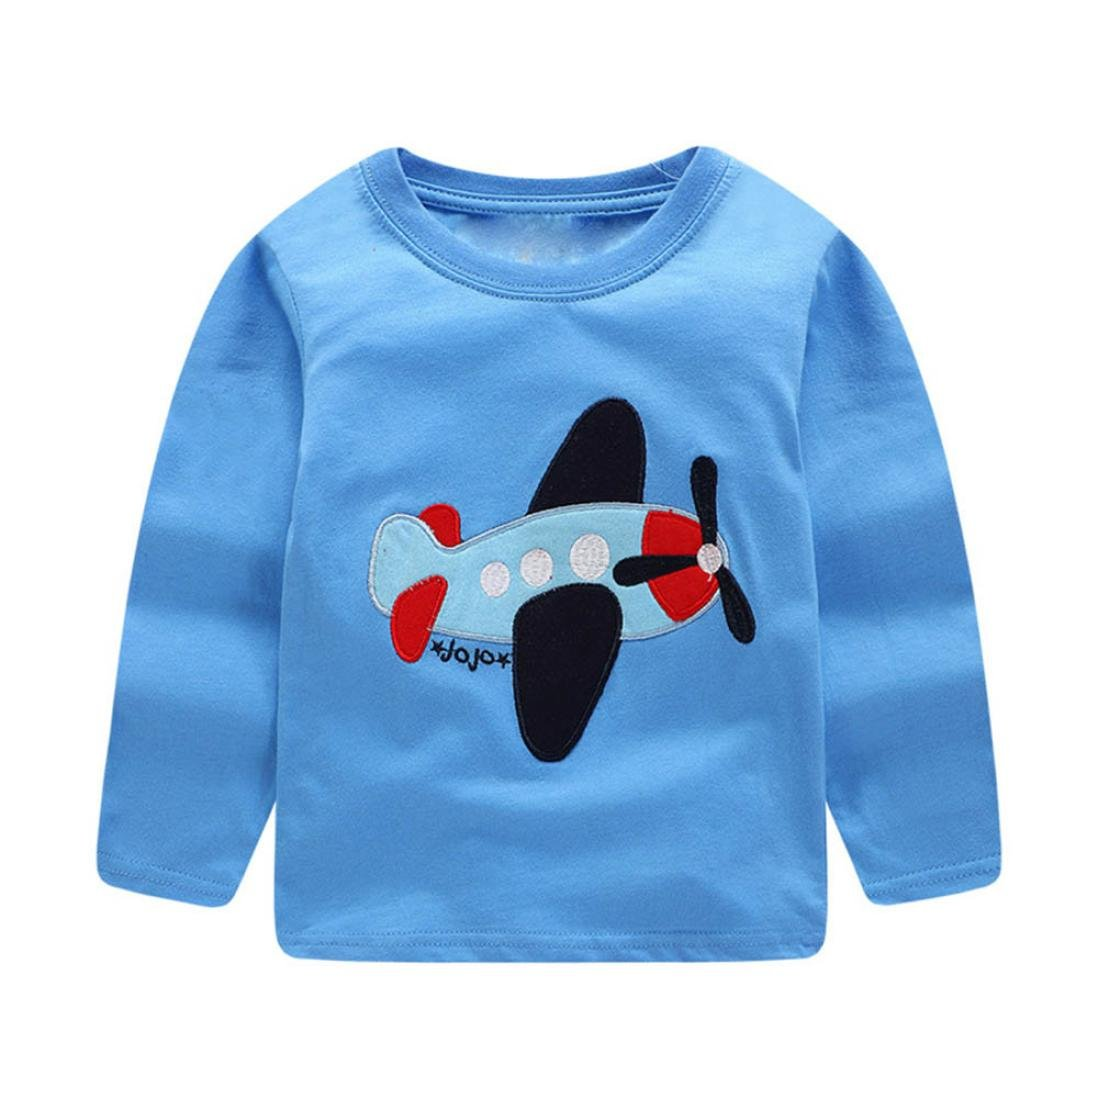 CHshe 1.5-6 Years Infant Boys T-Shirt, Cartoon Plane Print Pullover Sweatshirt Tops T-Shirts